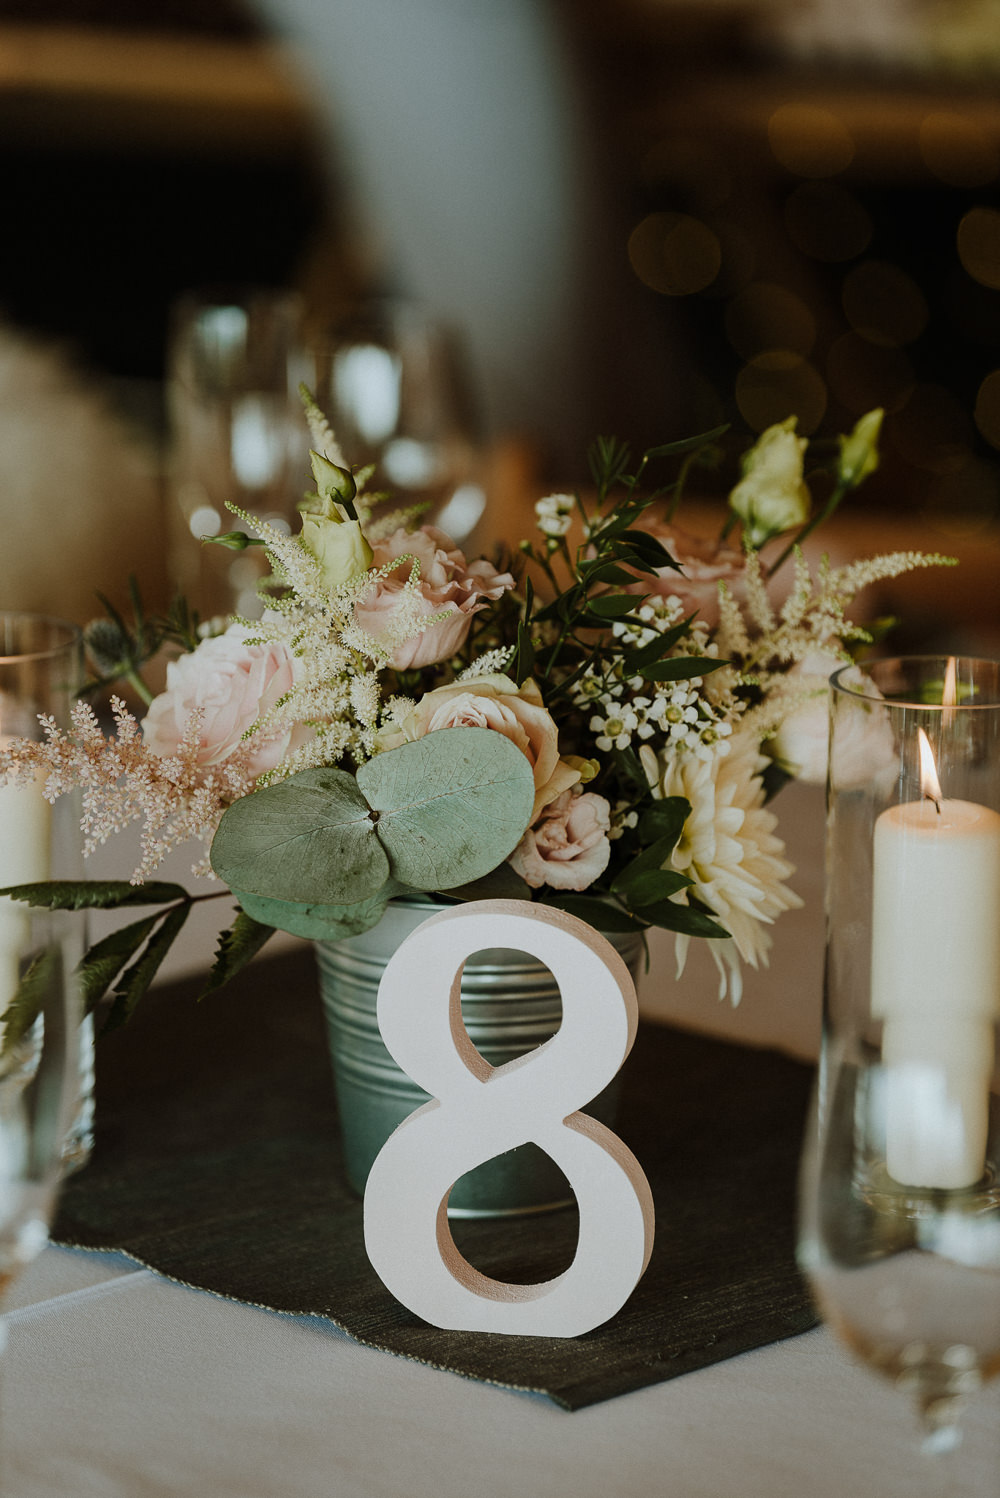 Tin Bucket Flowers Centrepiece Decor Table Candles Number Bre Pen Farm Wedding Nick Walker Photography